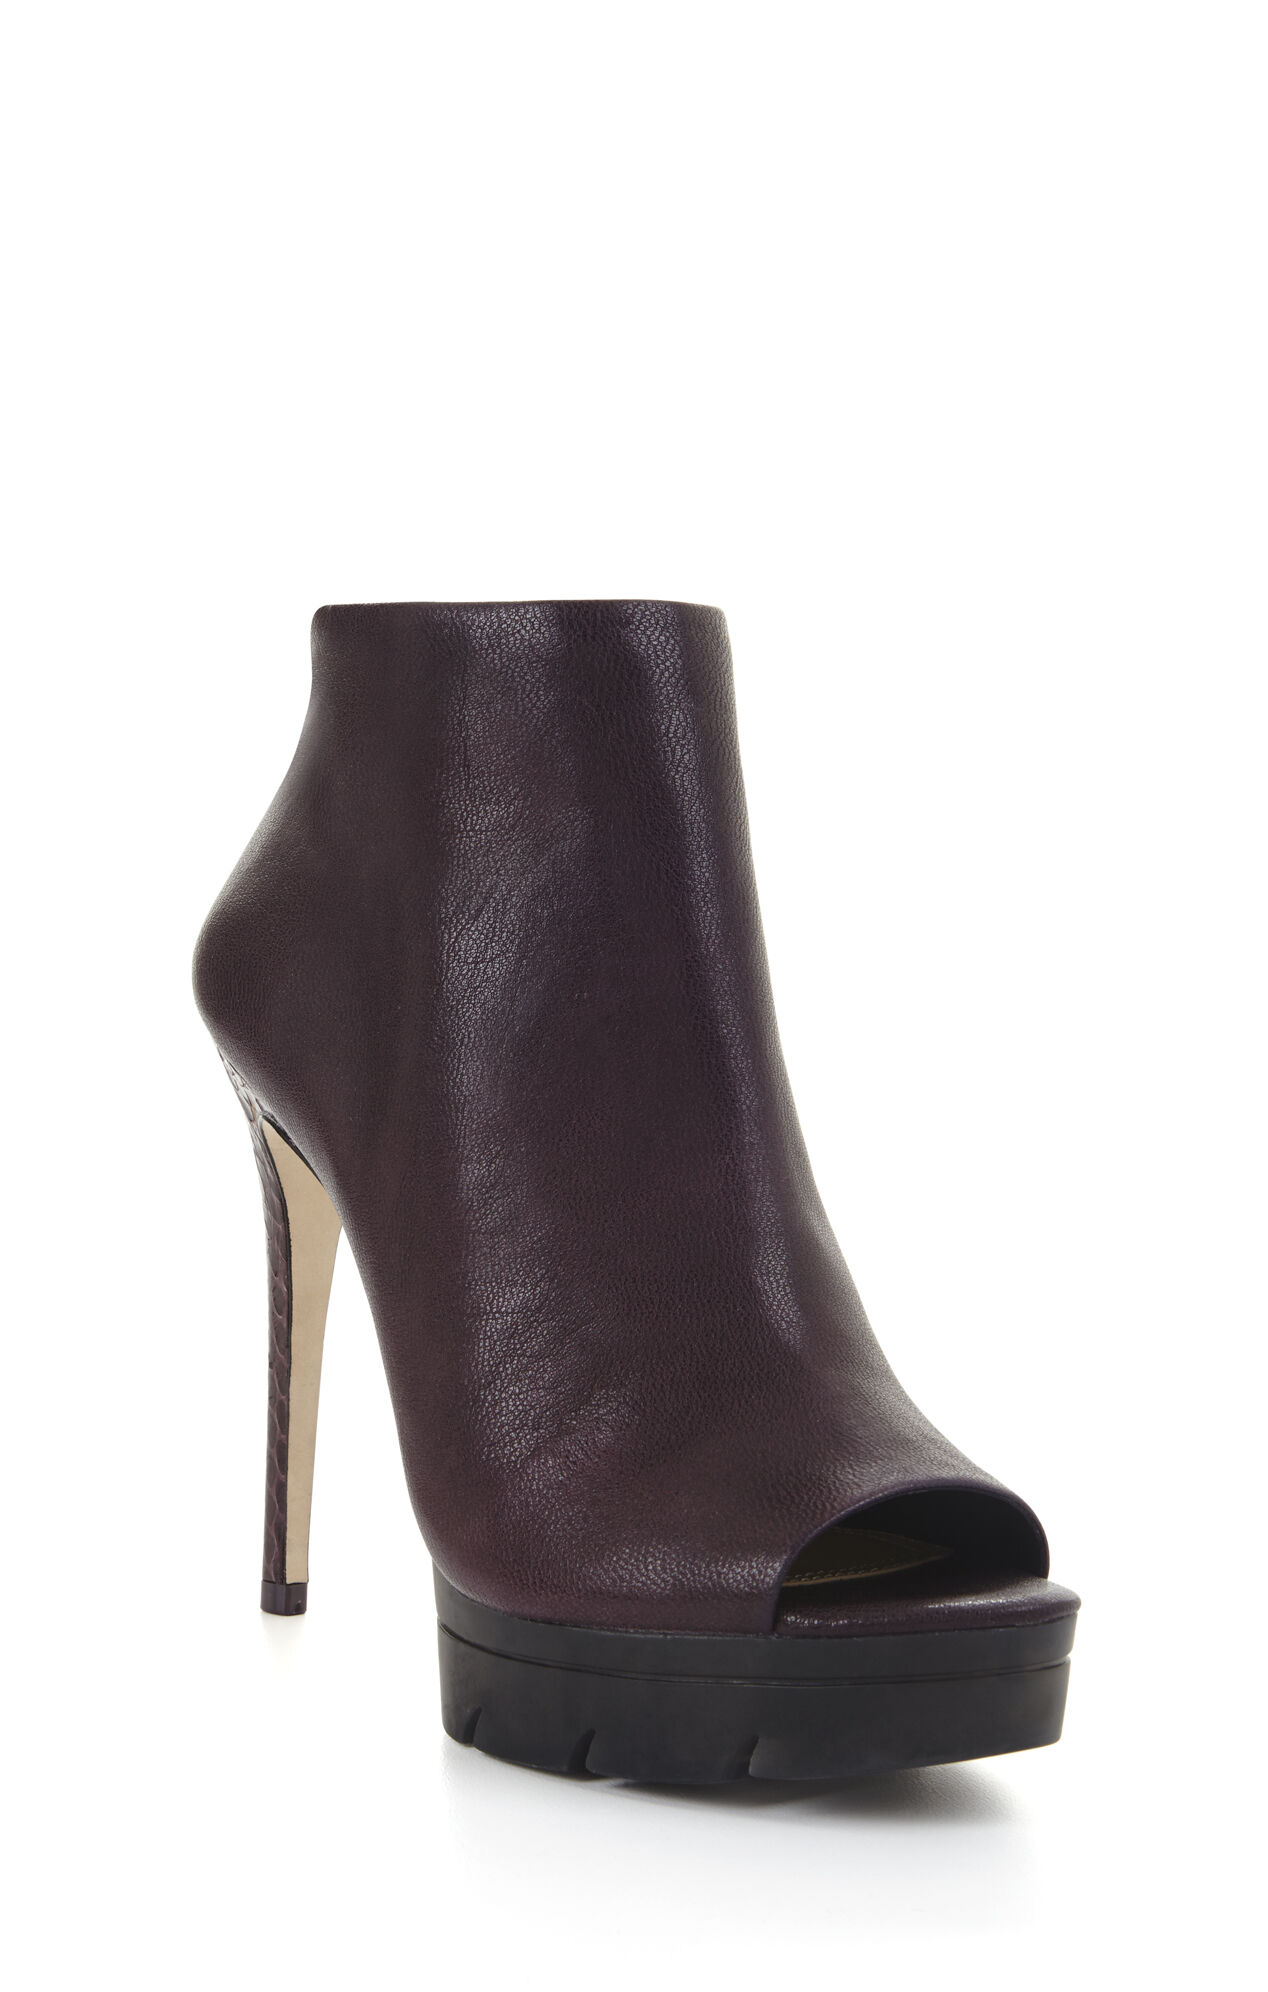 Hasten High-Heel Exotic Peep-Toe Bootie